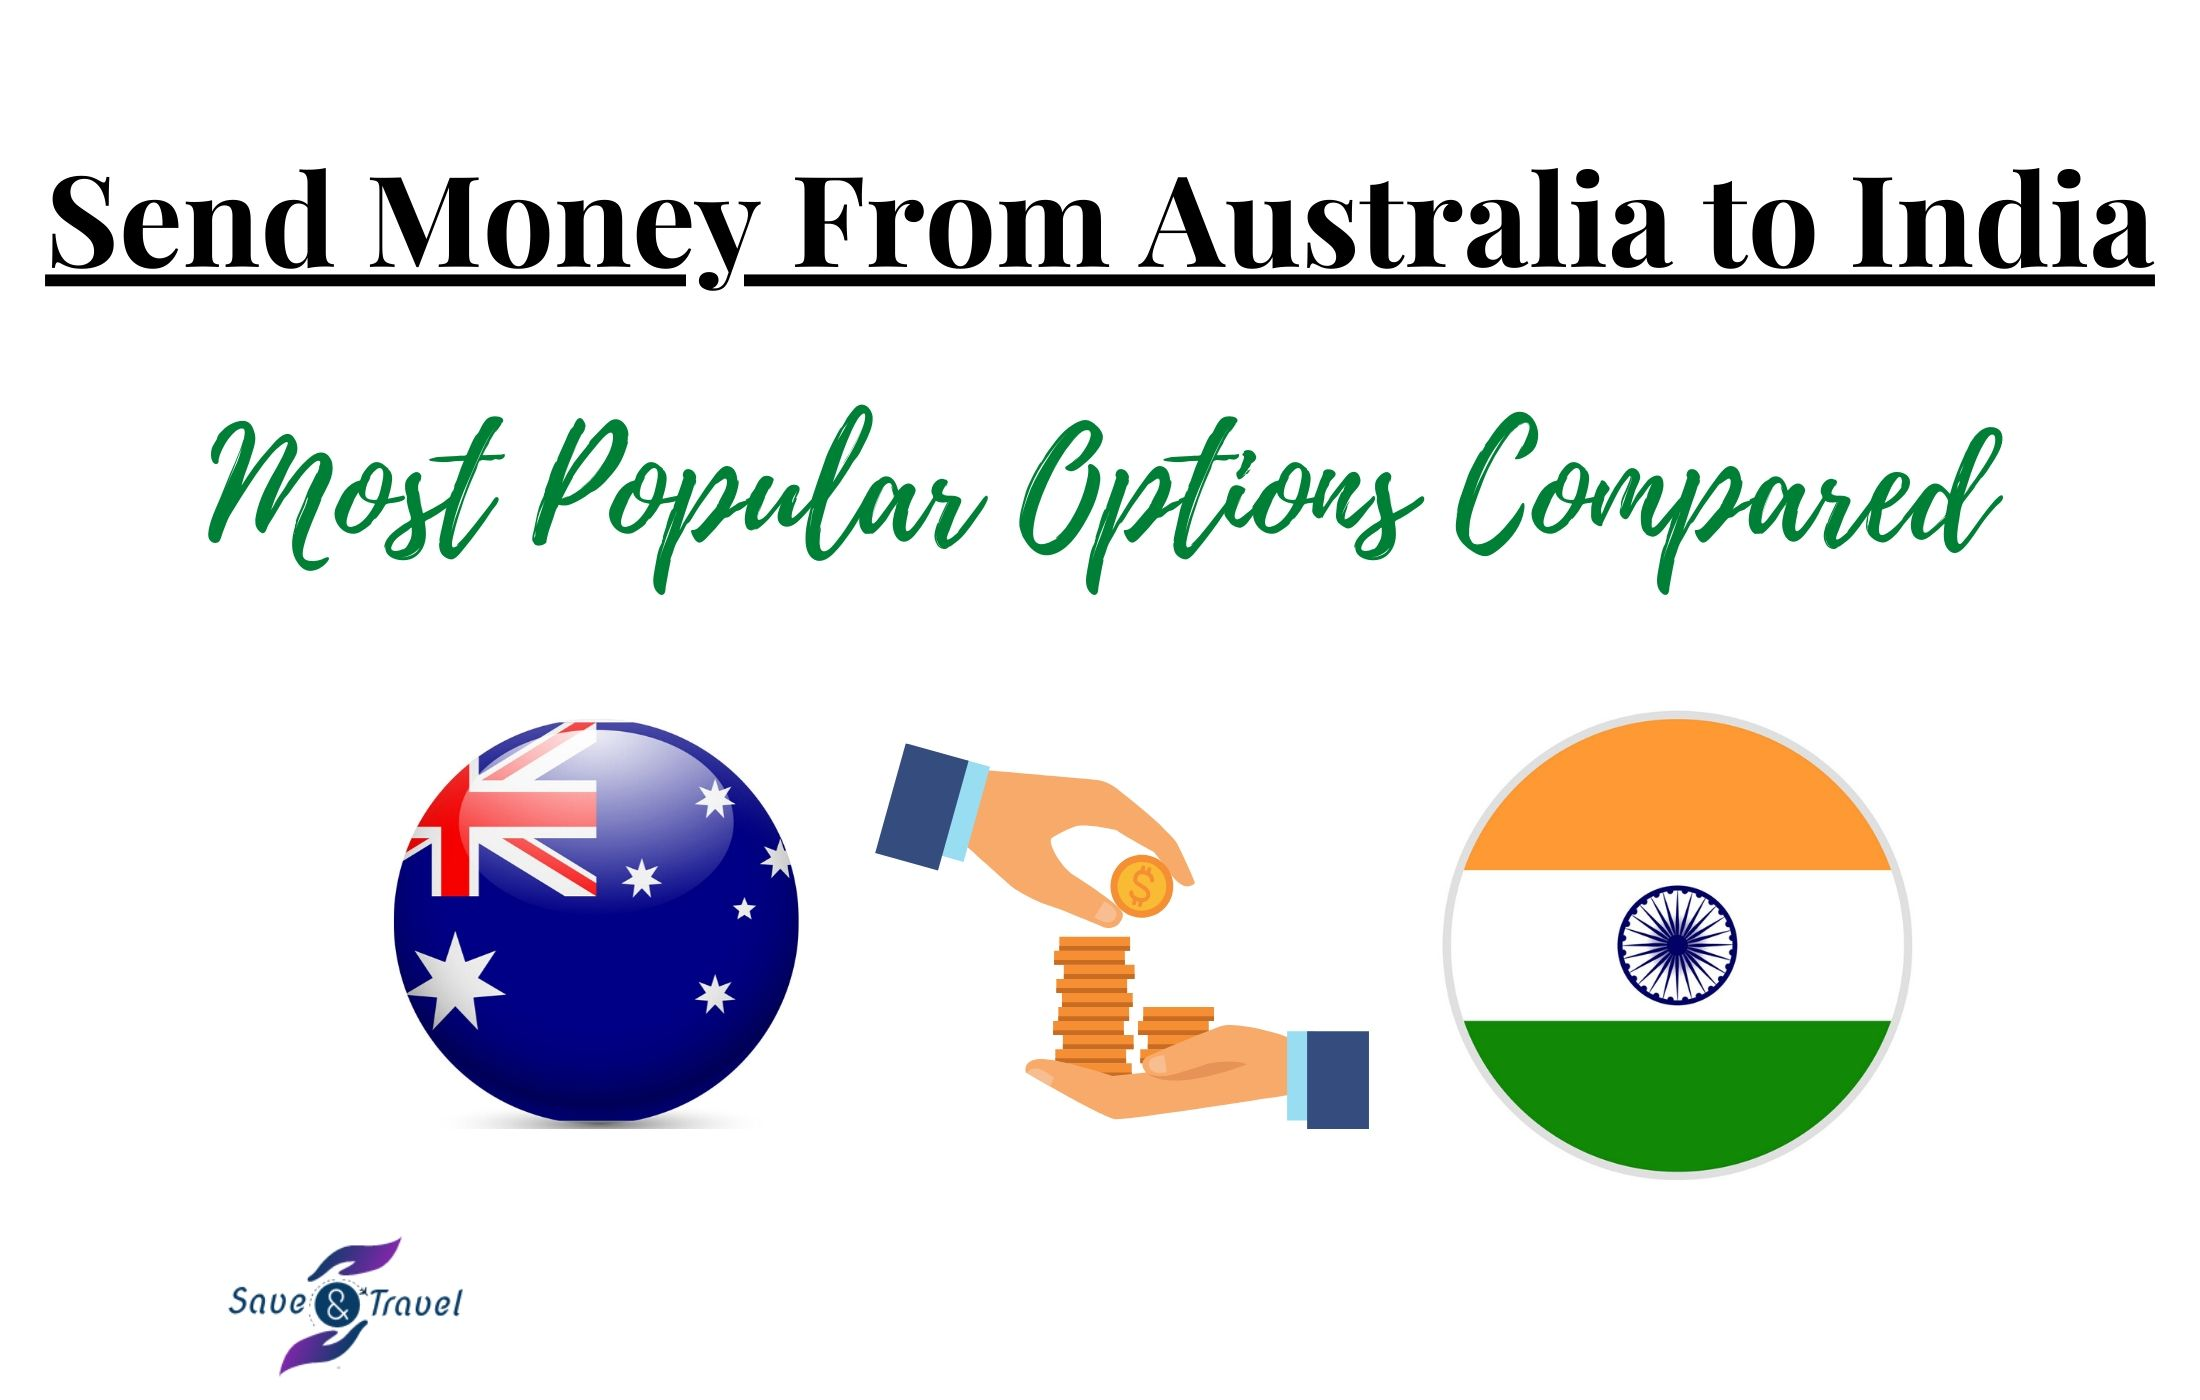 Best Way To Transfer Money From Australia to India